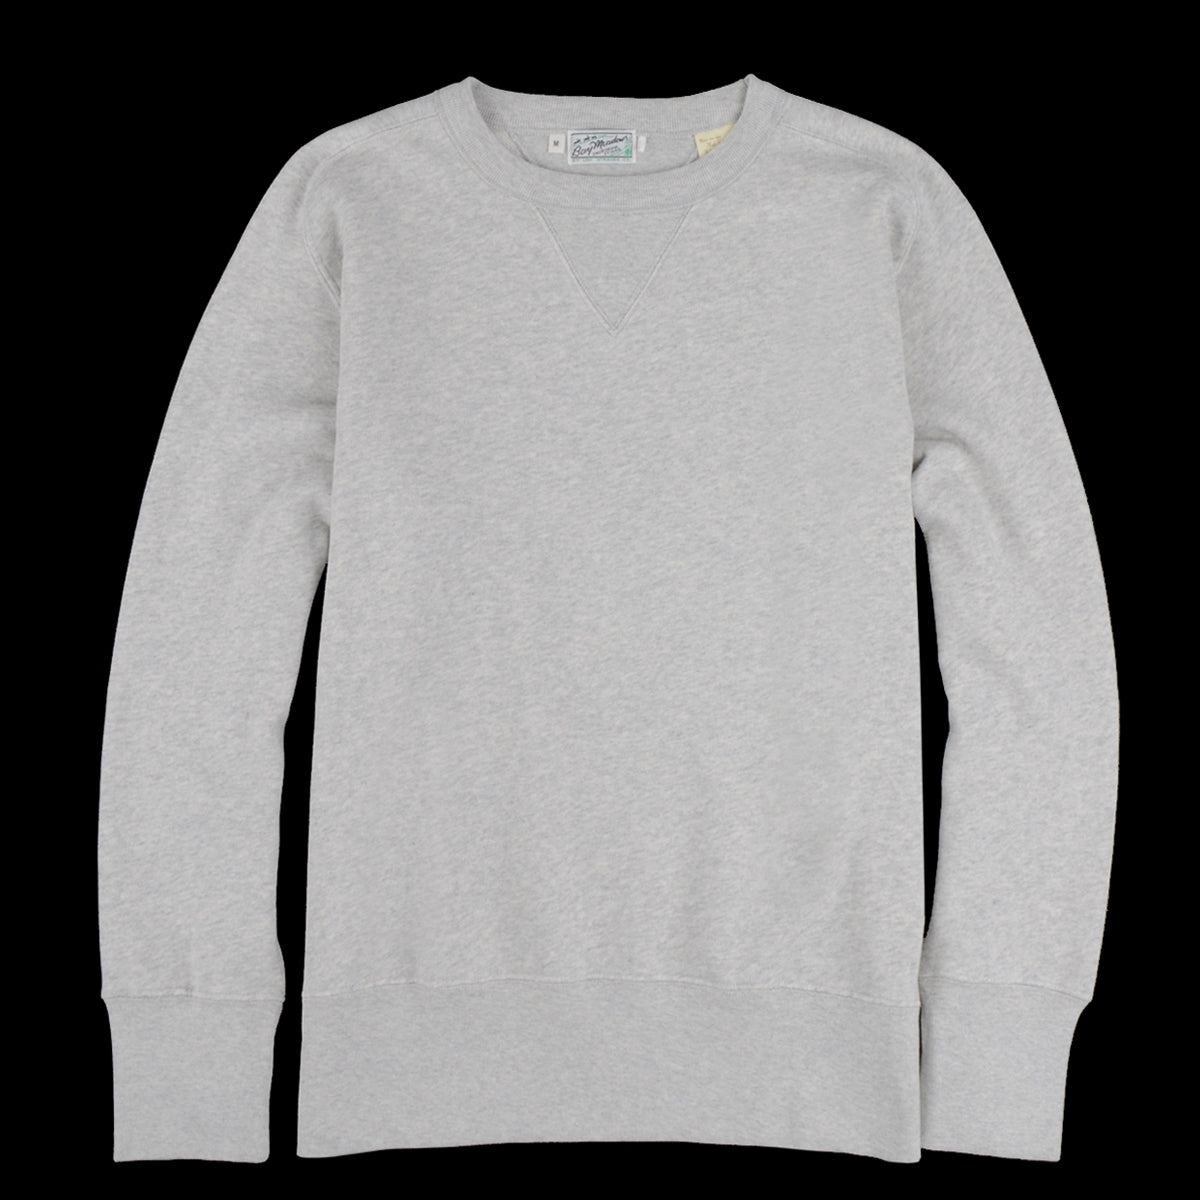 9e975973 Bay Meadows Sweatshirt in Oatmeal Mele